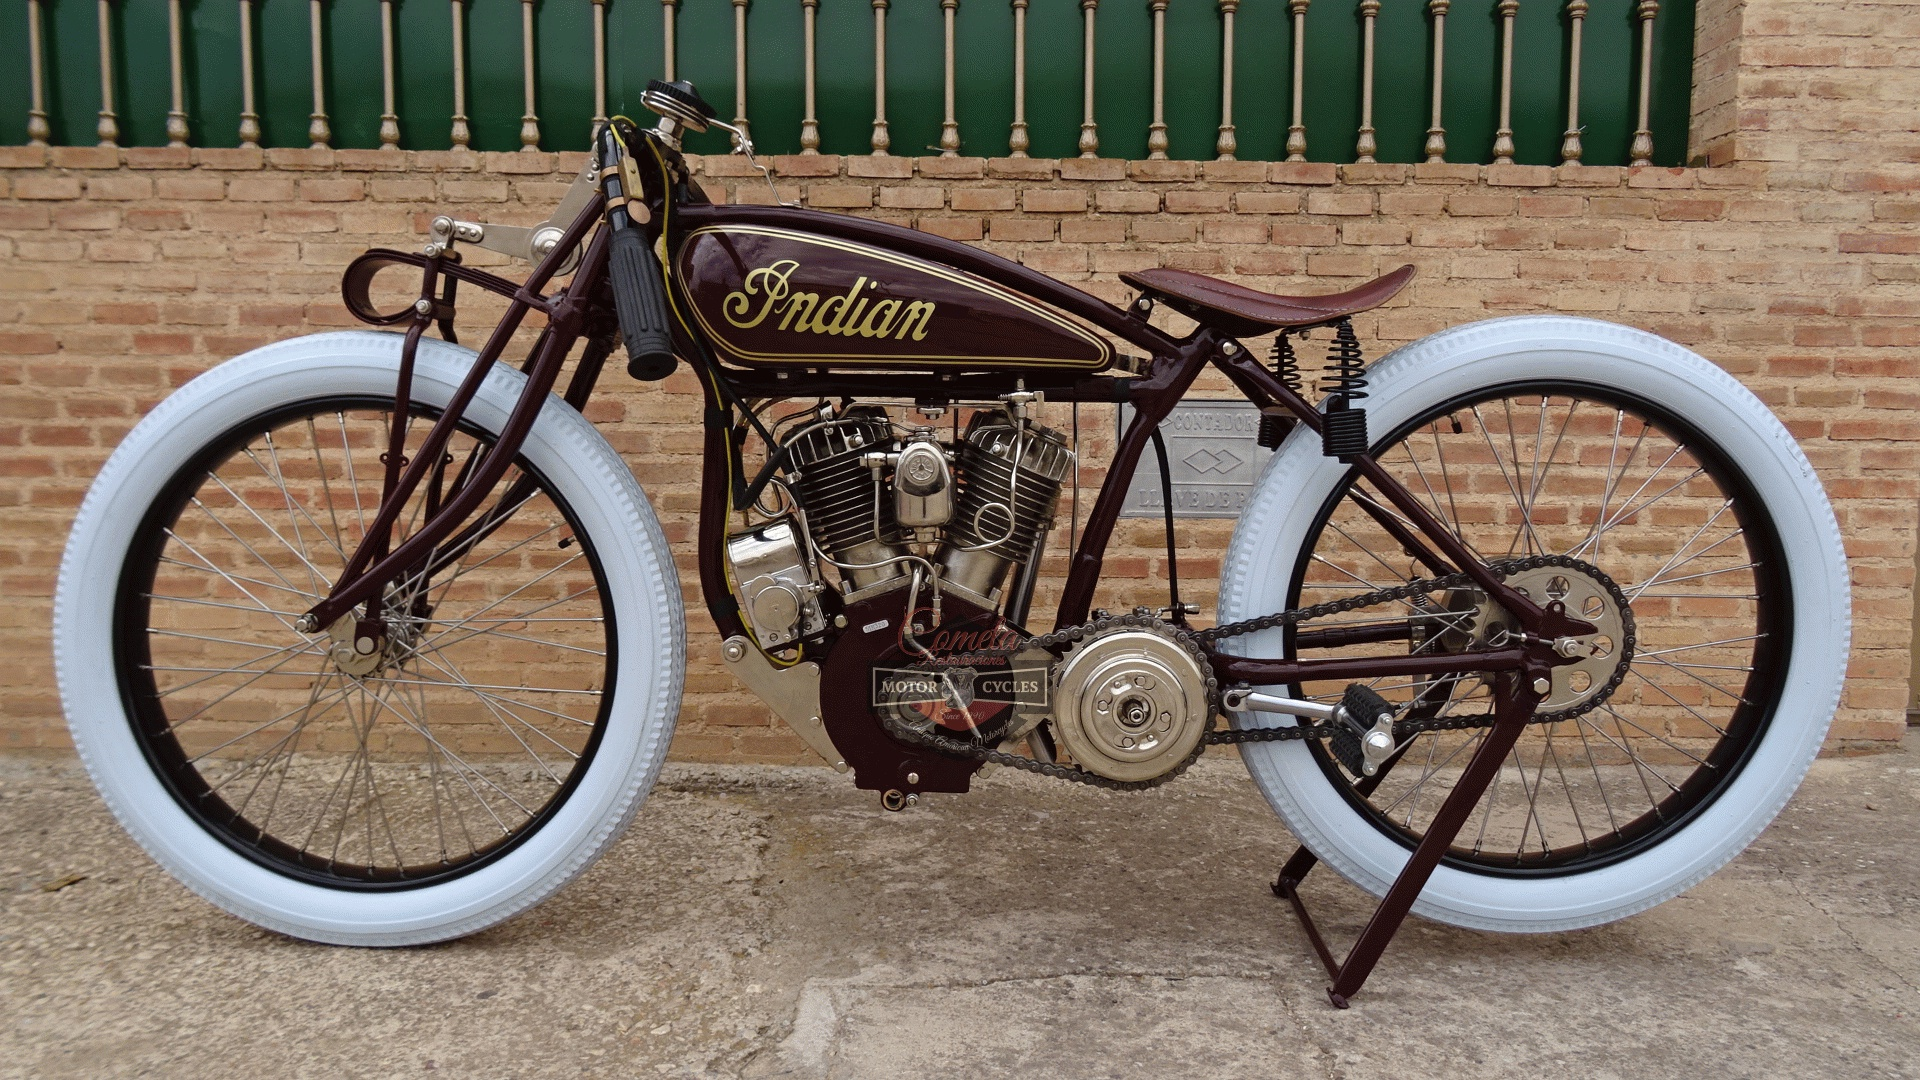 INDIAN POWERPLUS TT RACER AÑO 1920 1000cc!